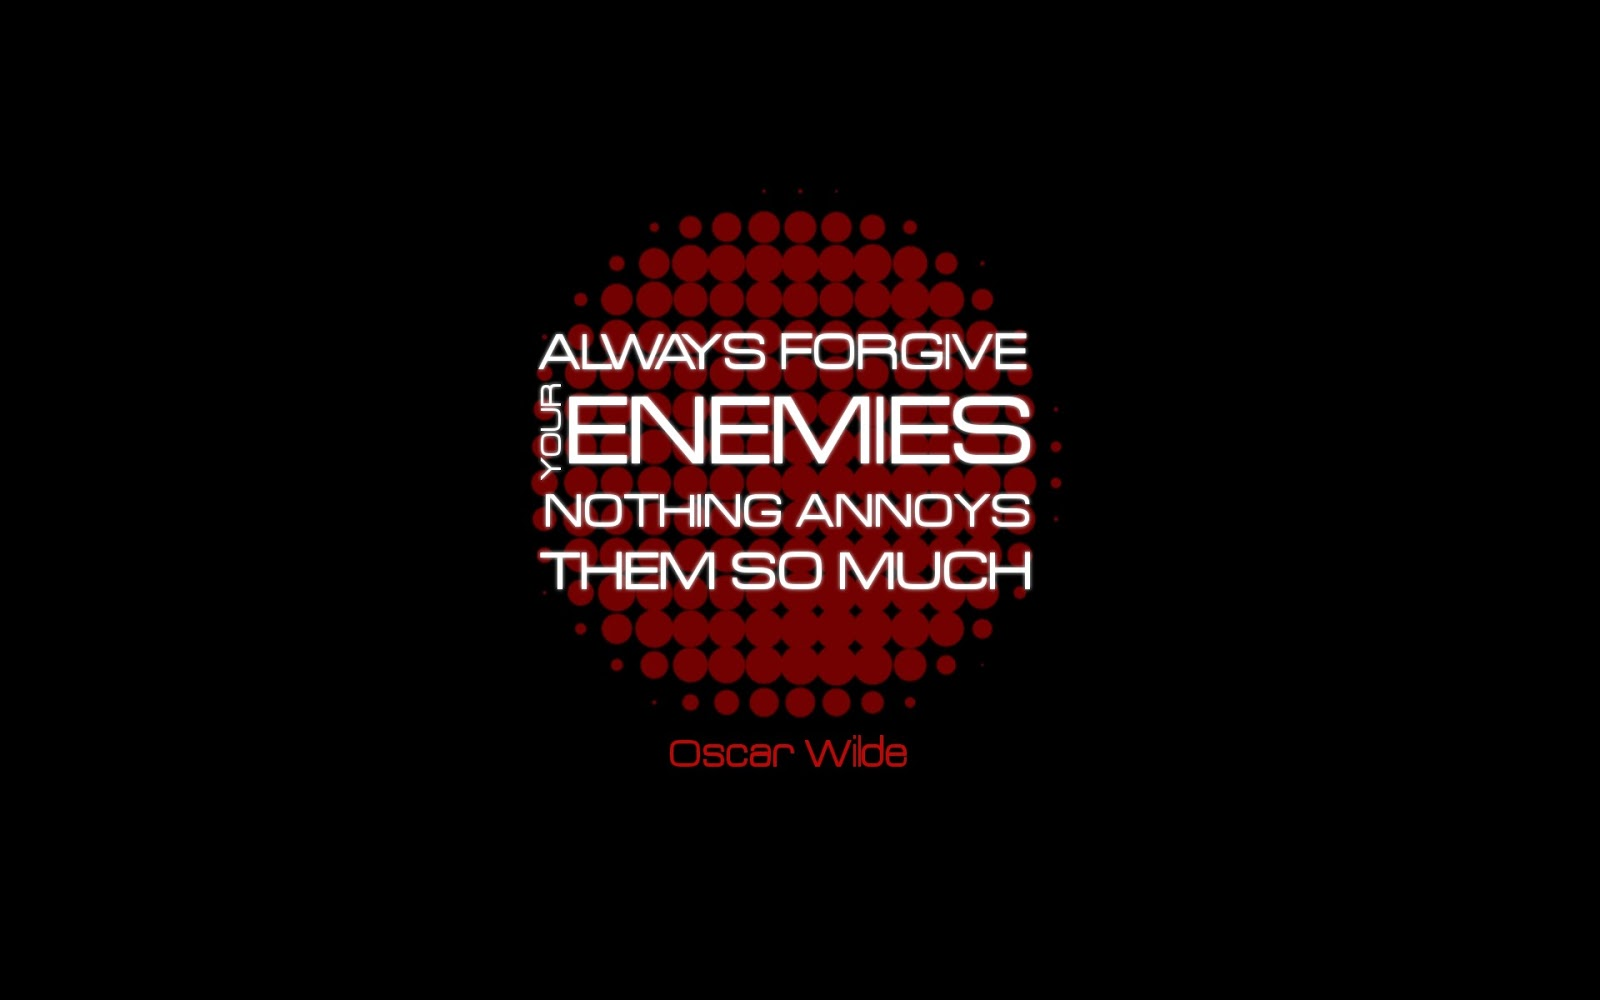 Black Background With Quotes. QuotesGram